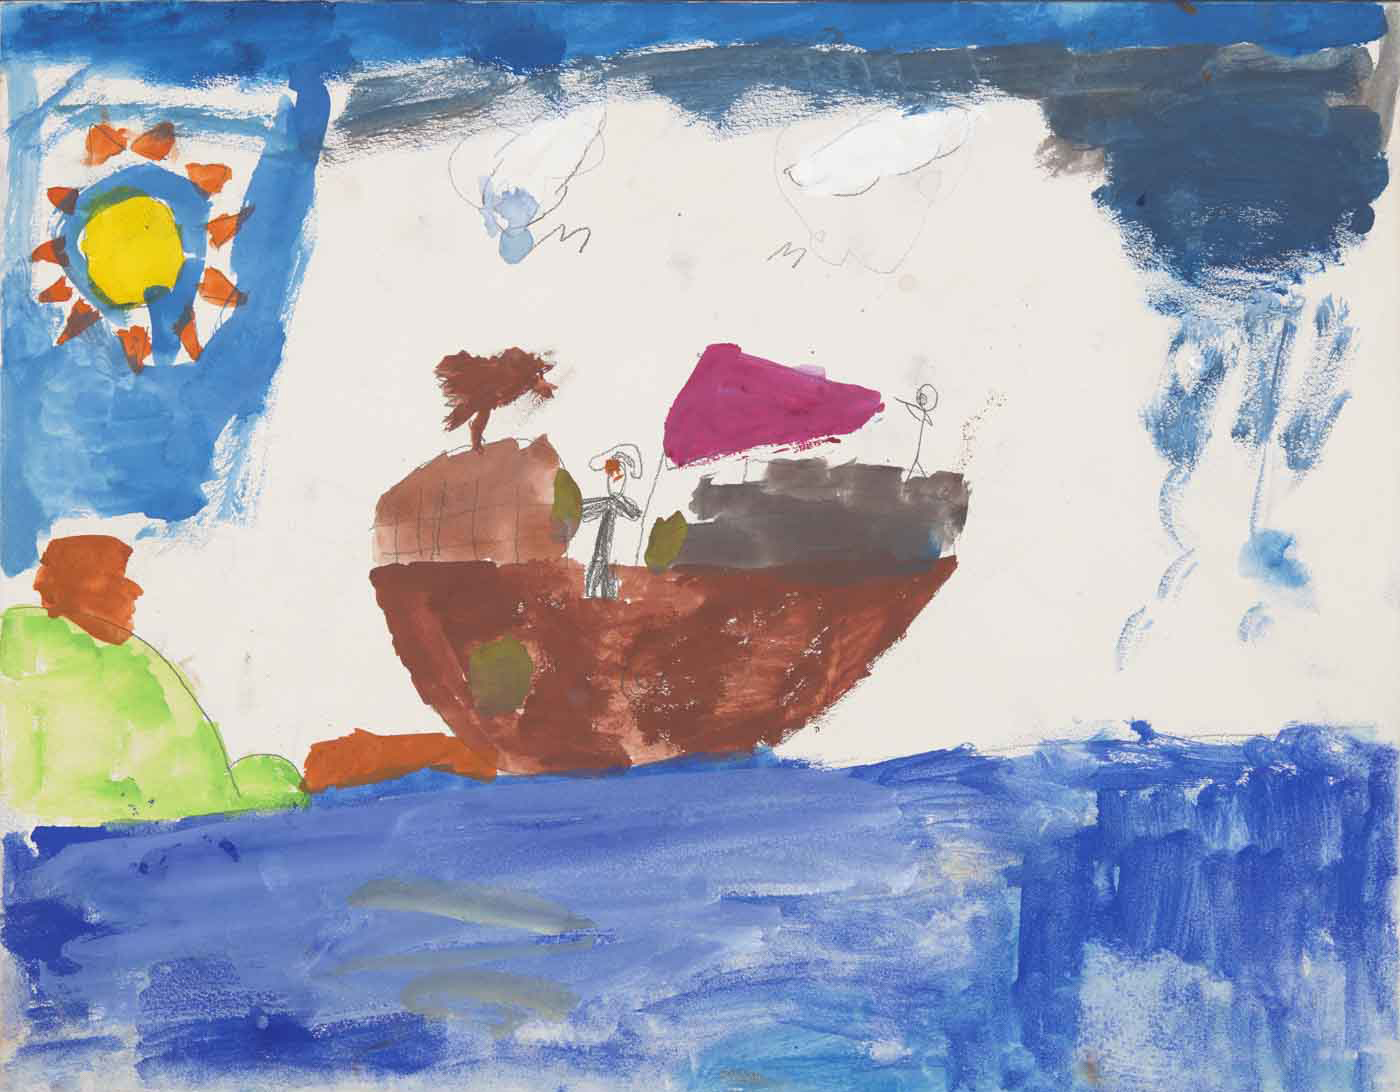 A child's painting depicting a ship at sea, approaching land.